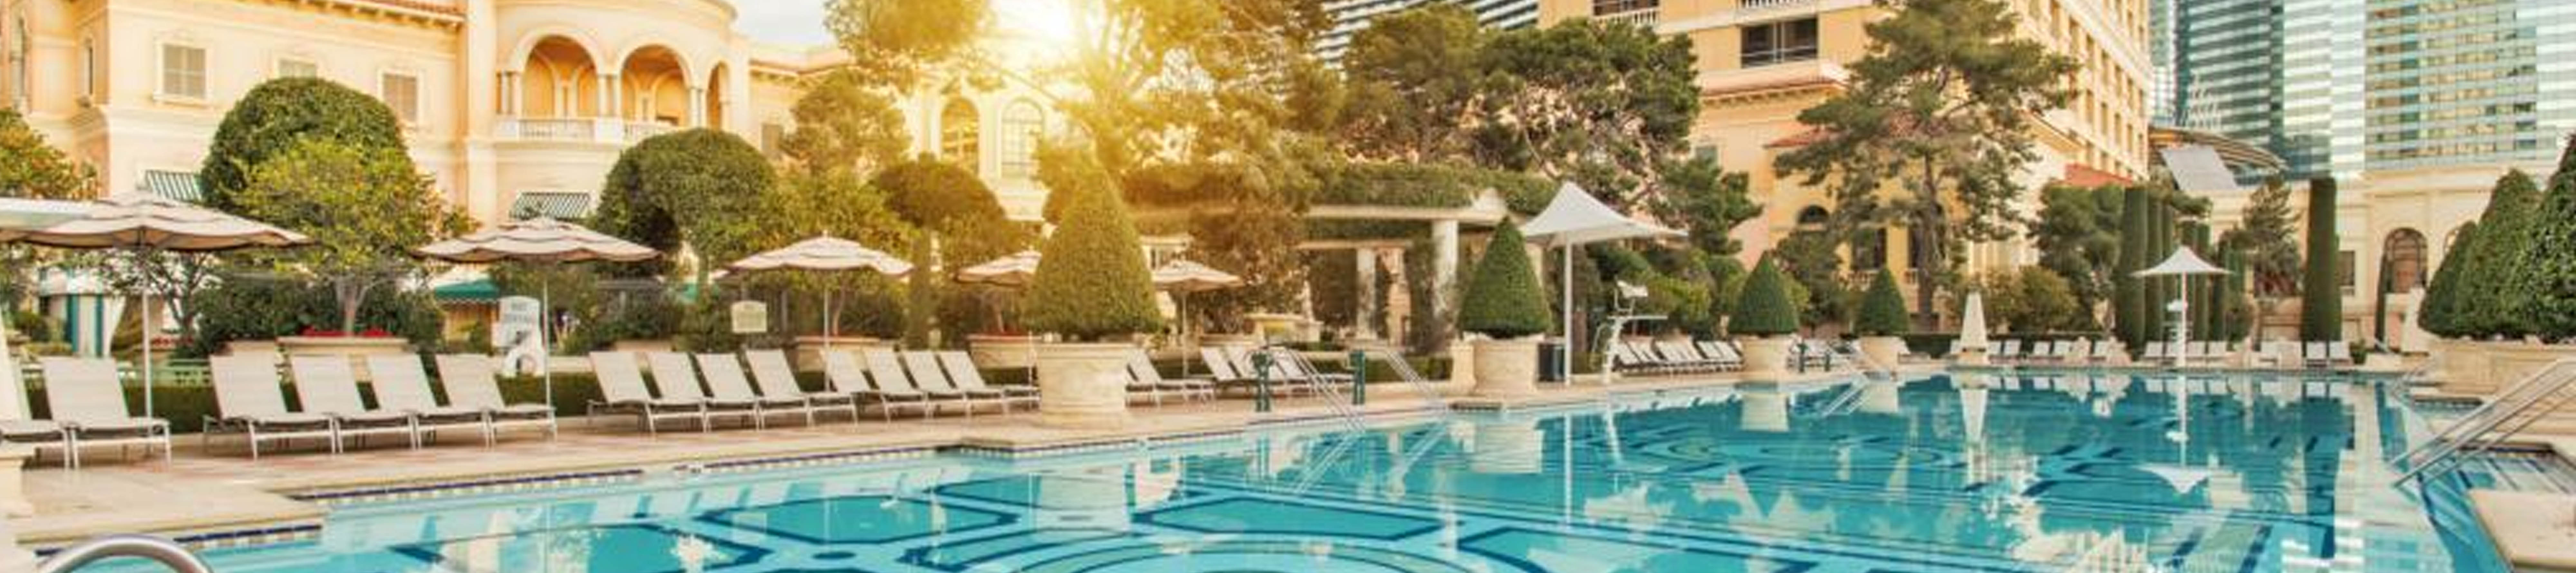 Discover The Best Pools In Las Vegas